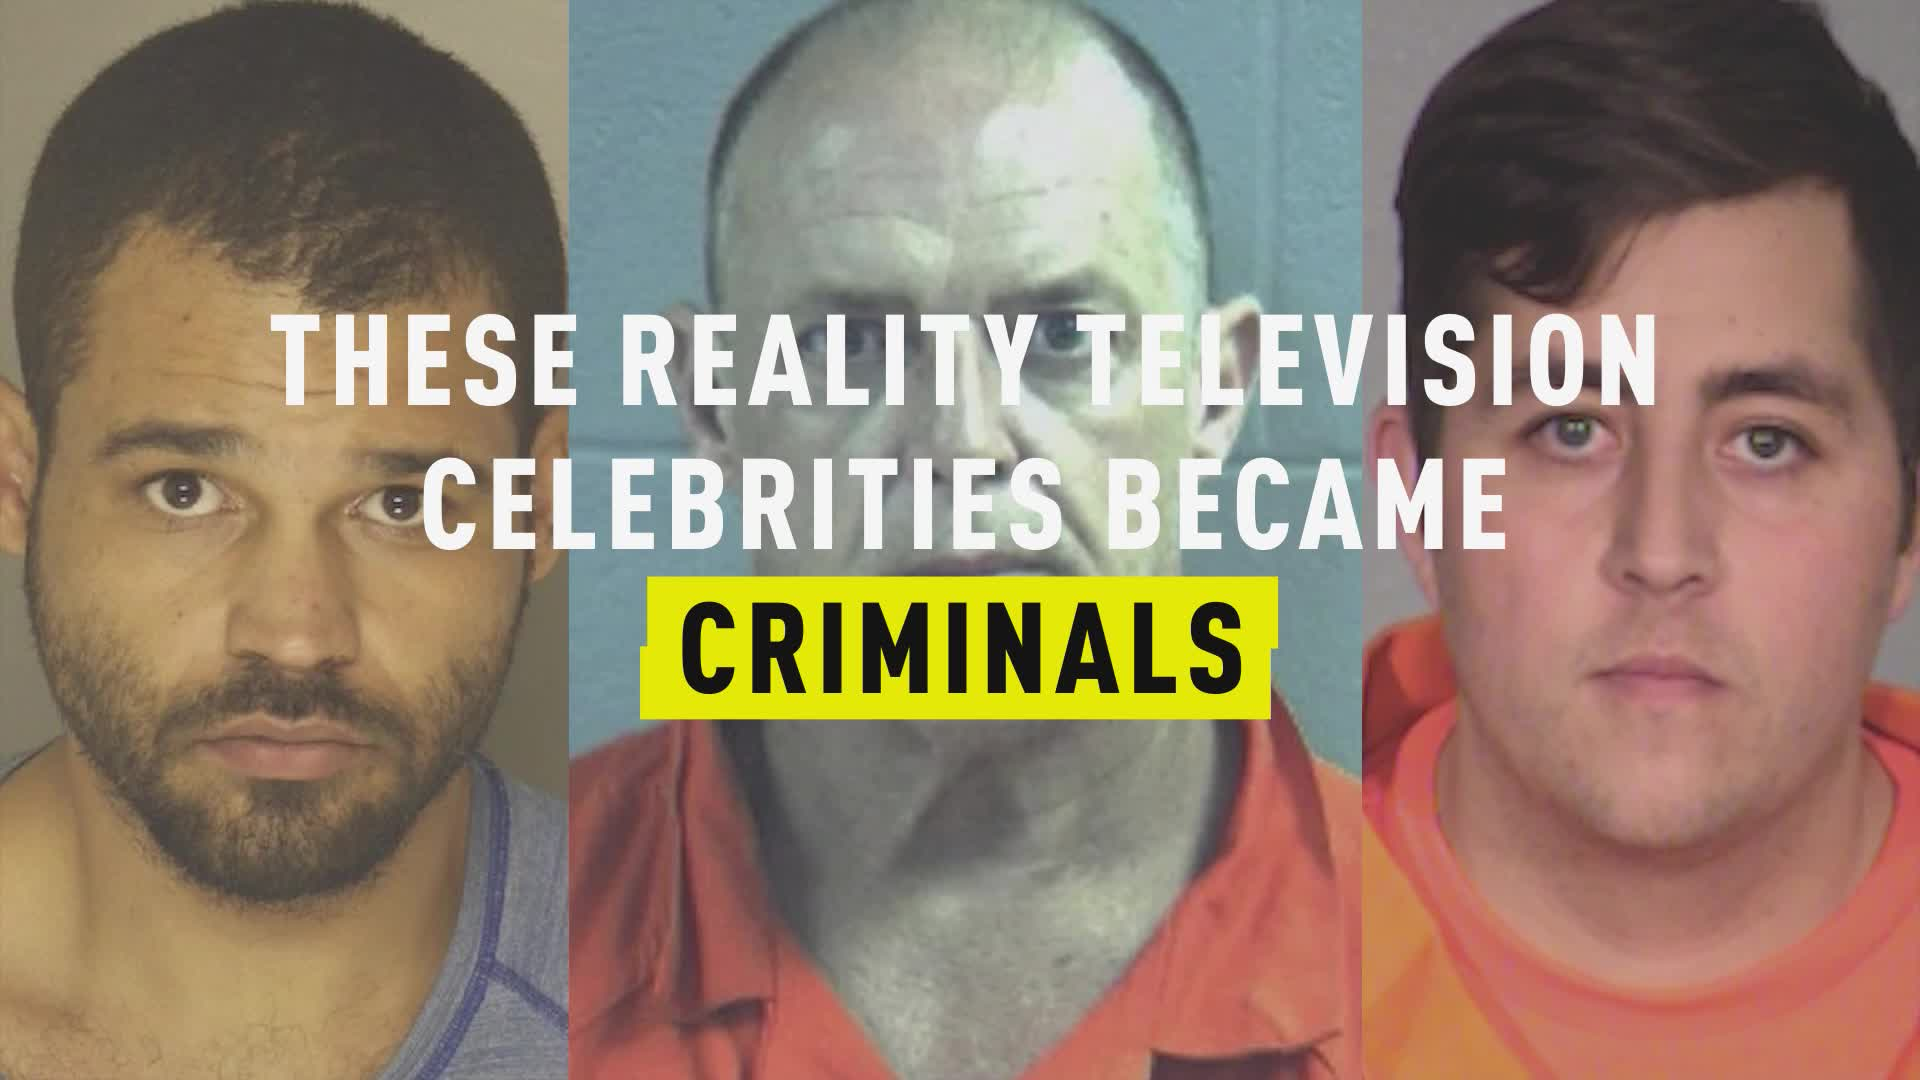 Antonella Sexo these reality television celebrities became criminals